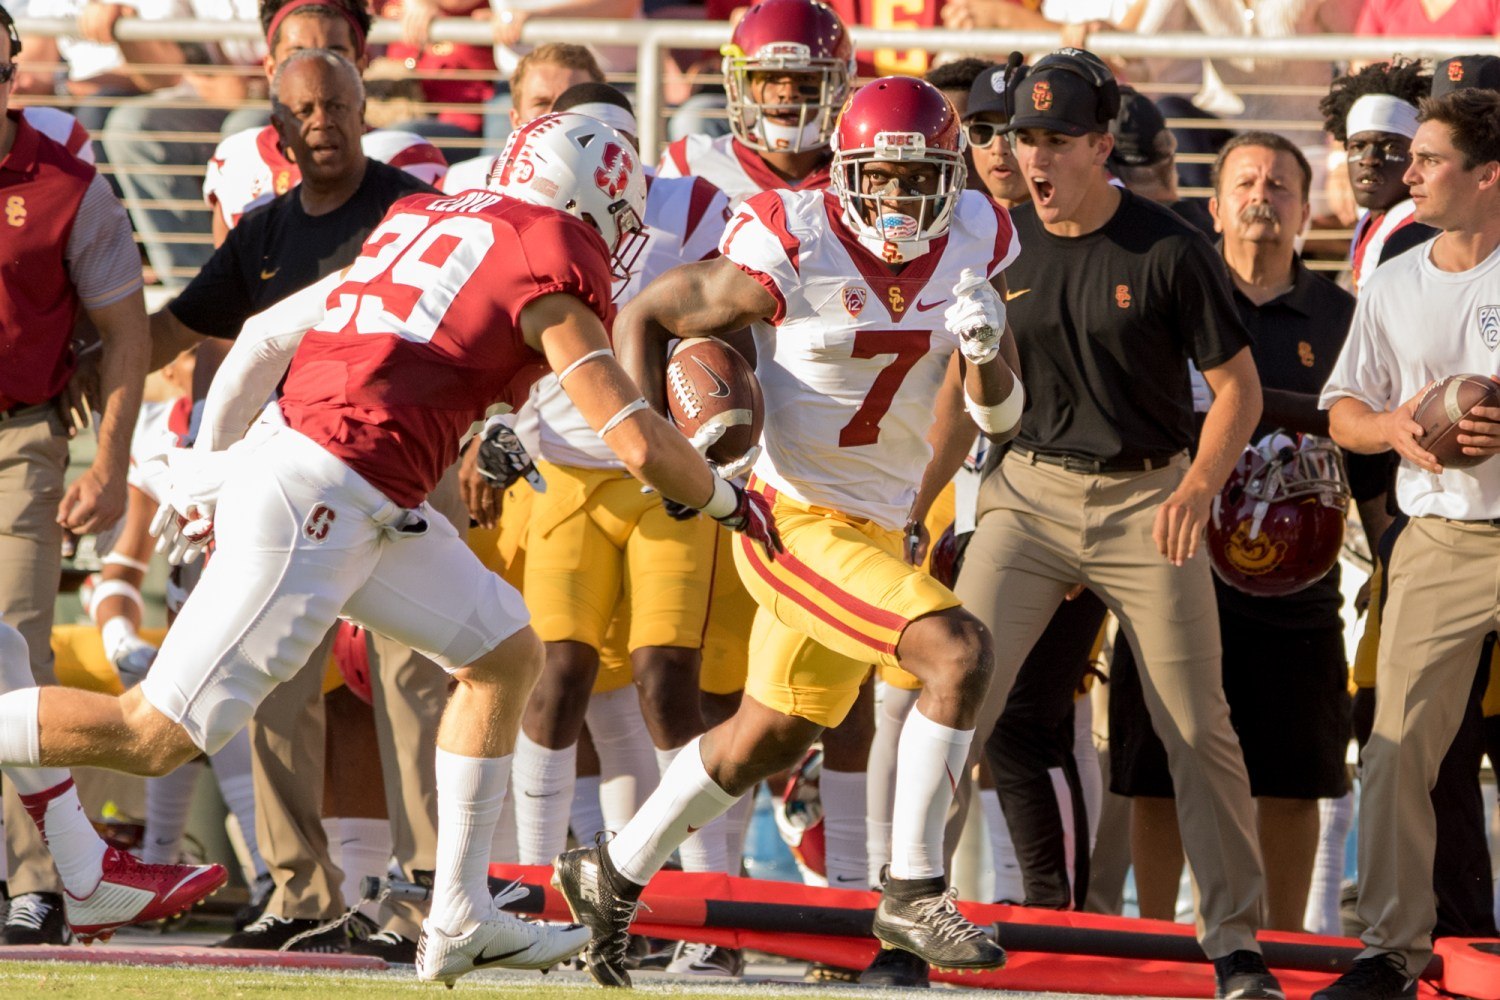 Nick Entin | Daily Trojan Sophomore tight end Tyler Petite runs for extra yards after catching a pass while Stanford coaches react in frustration. The play set up a touchdown run by Ronald Jones II early in the second half.